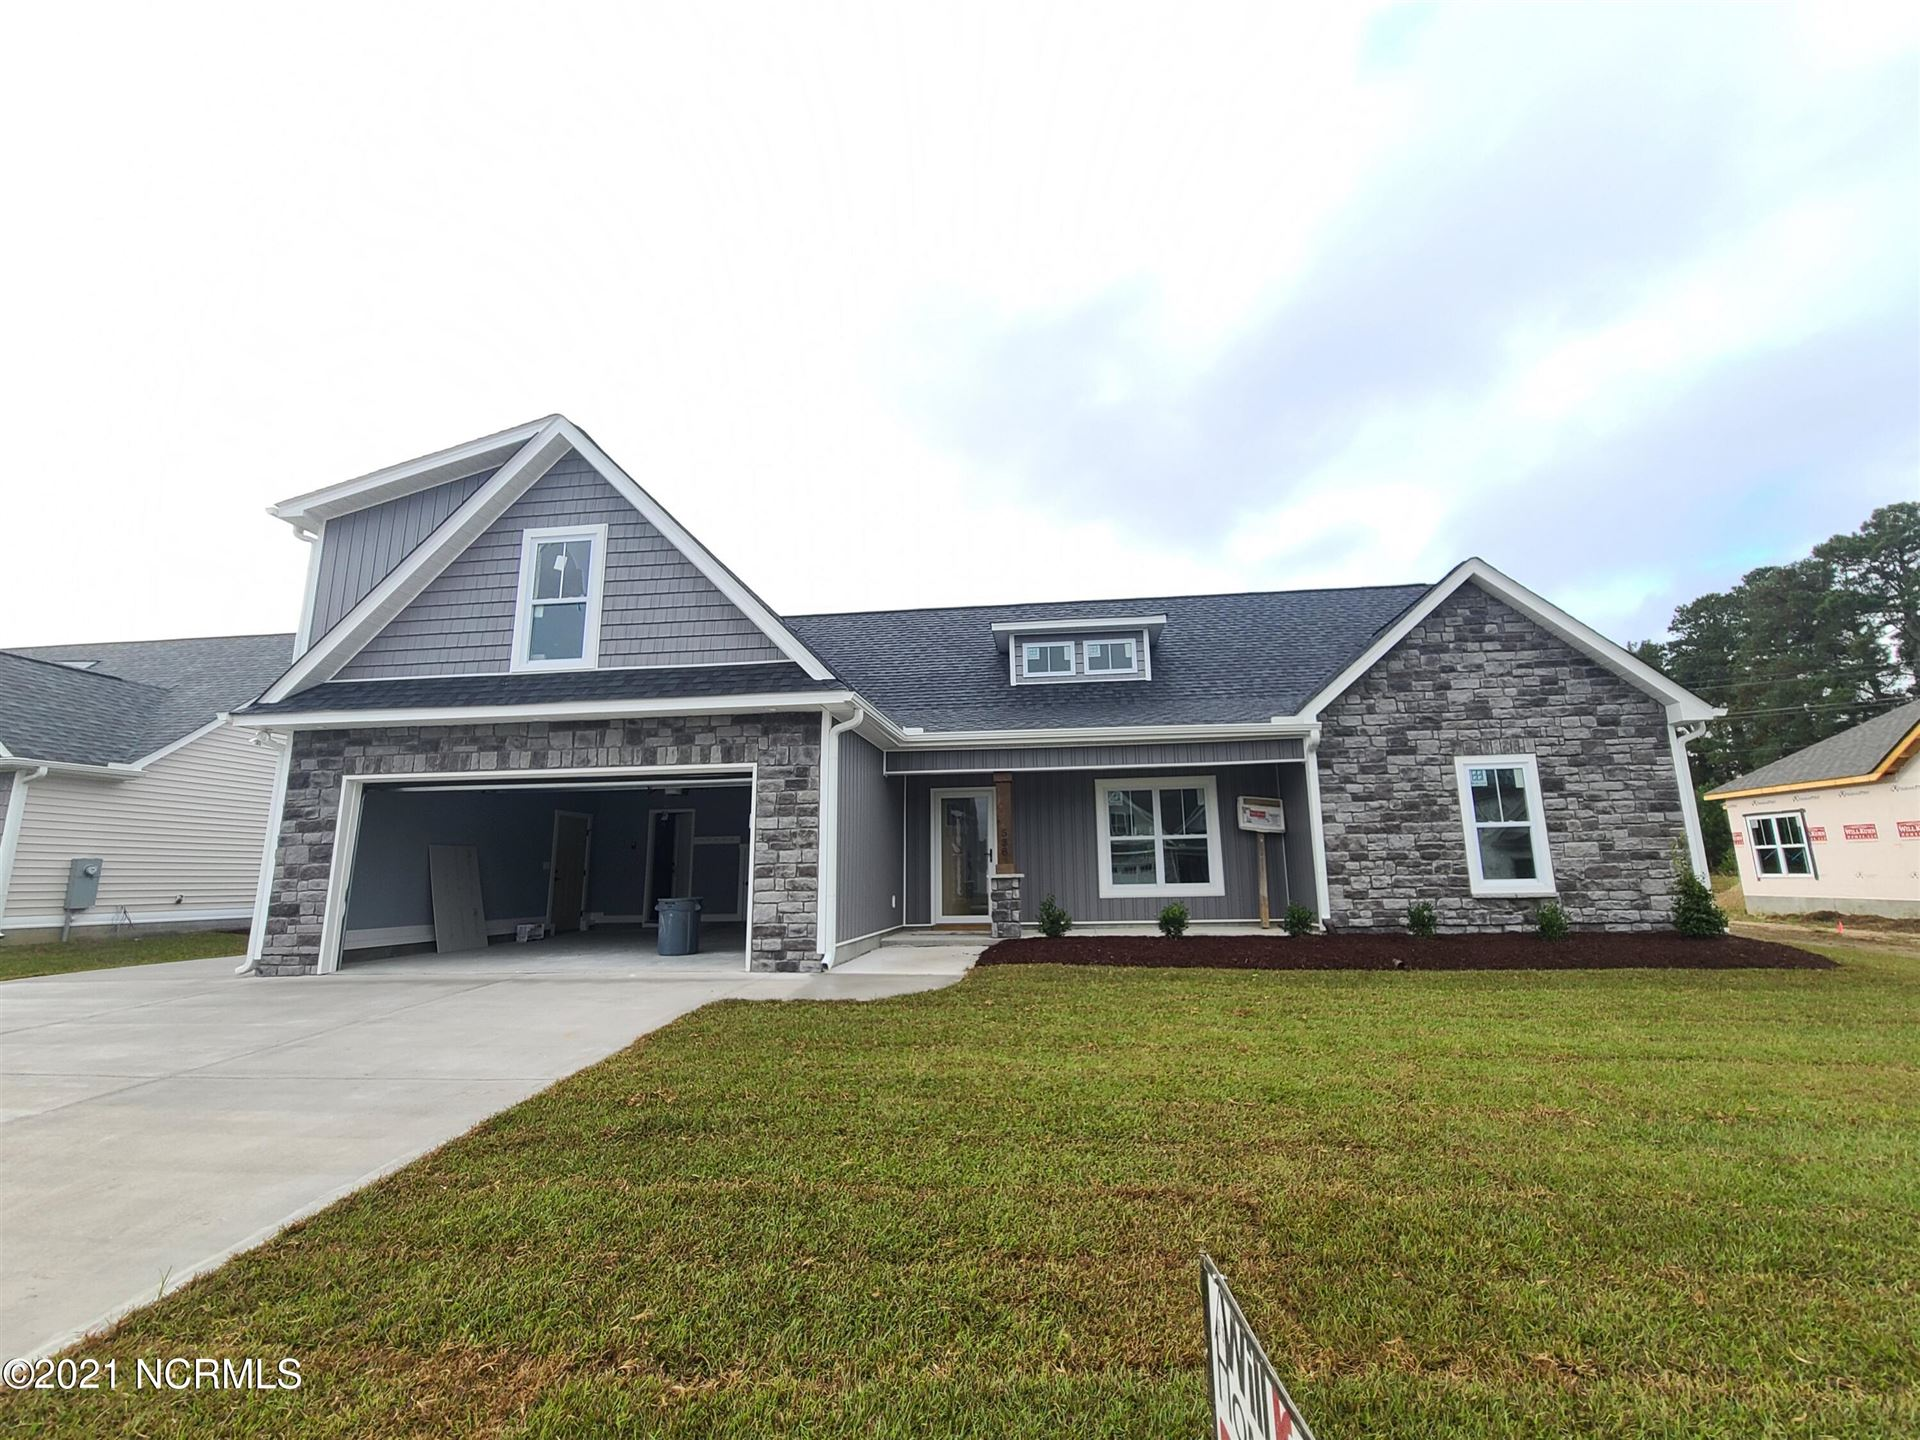 Photo of 538 Norberry Drive, Winterville, NC 28590 (MLS # 100294590)